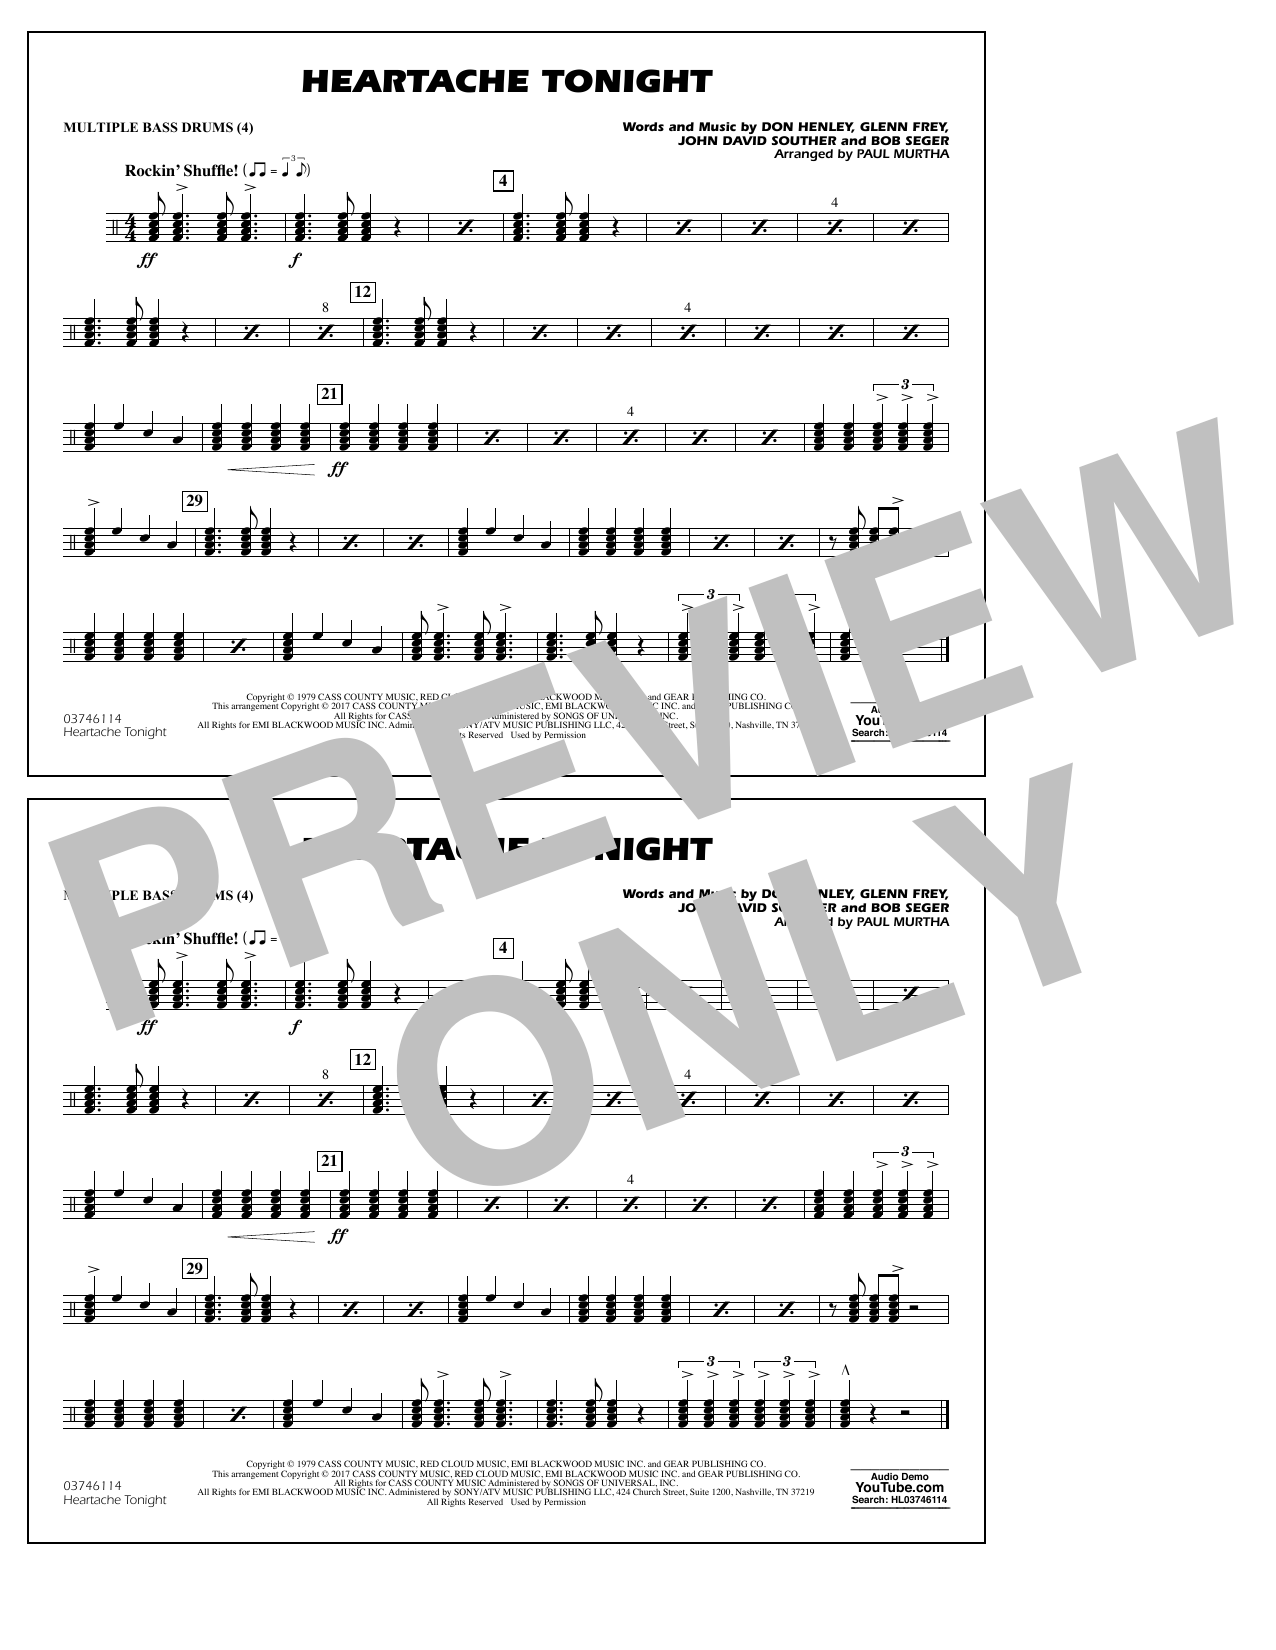 Heartache Tonight - Multiple Bass Drums Sheet Music